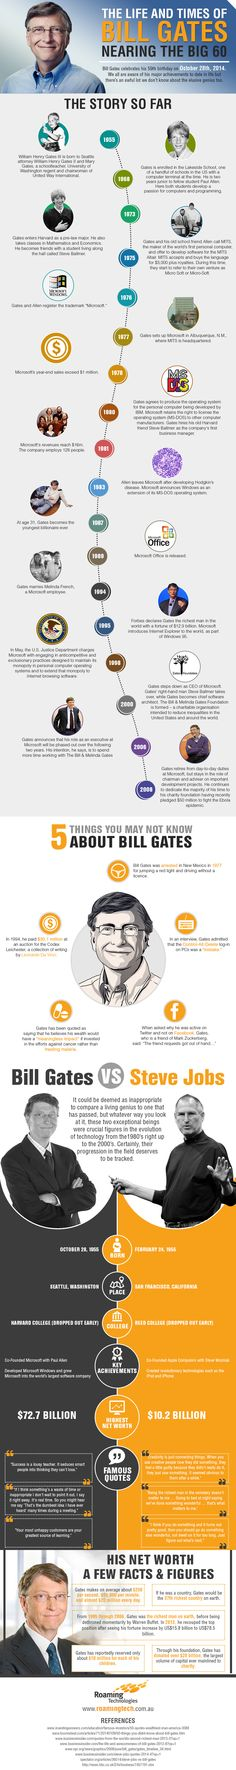 Roaming Technologies IG Bill Gates - Infographic